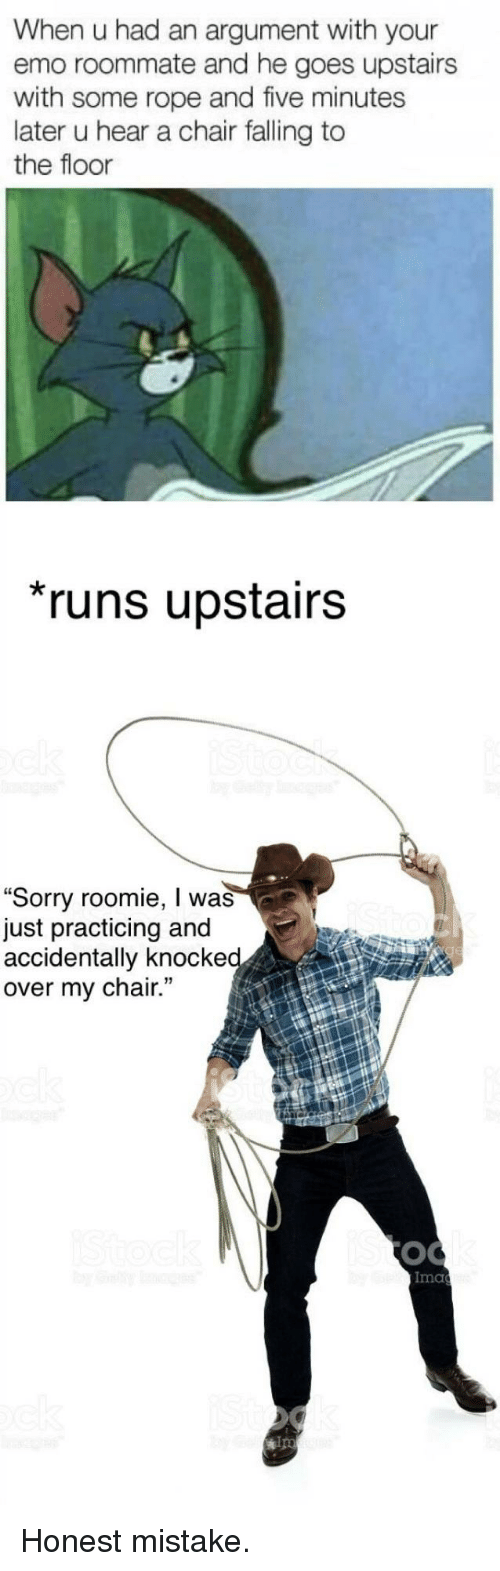 """ips: When u had an argument with your  emo roommate and he goes upstairs  with some rope and five minutes  later u hear a chair falling to  the floor  runs upstairs  """"Sorry roomie, I was  just practicing and  accidentally knocke  over my chair.  Ima  ips <p>Honest mistake.</p>"""